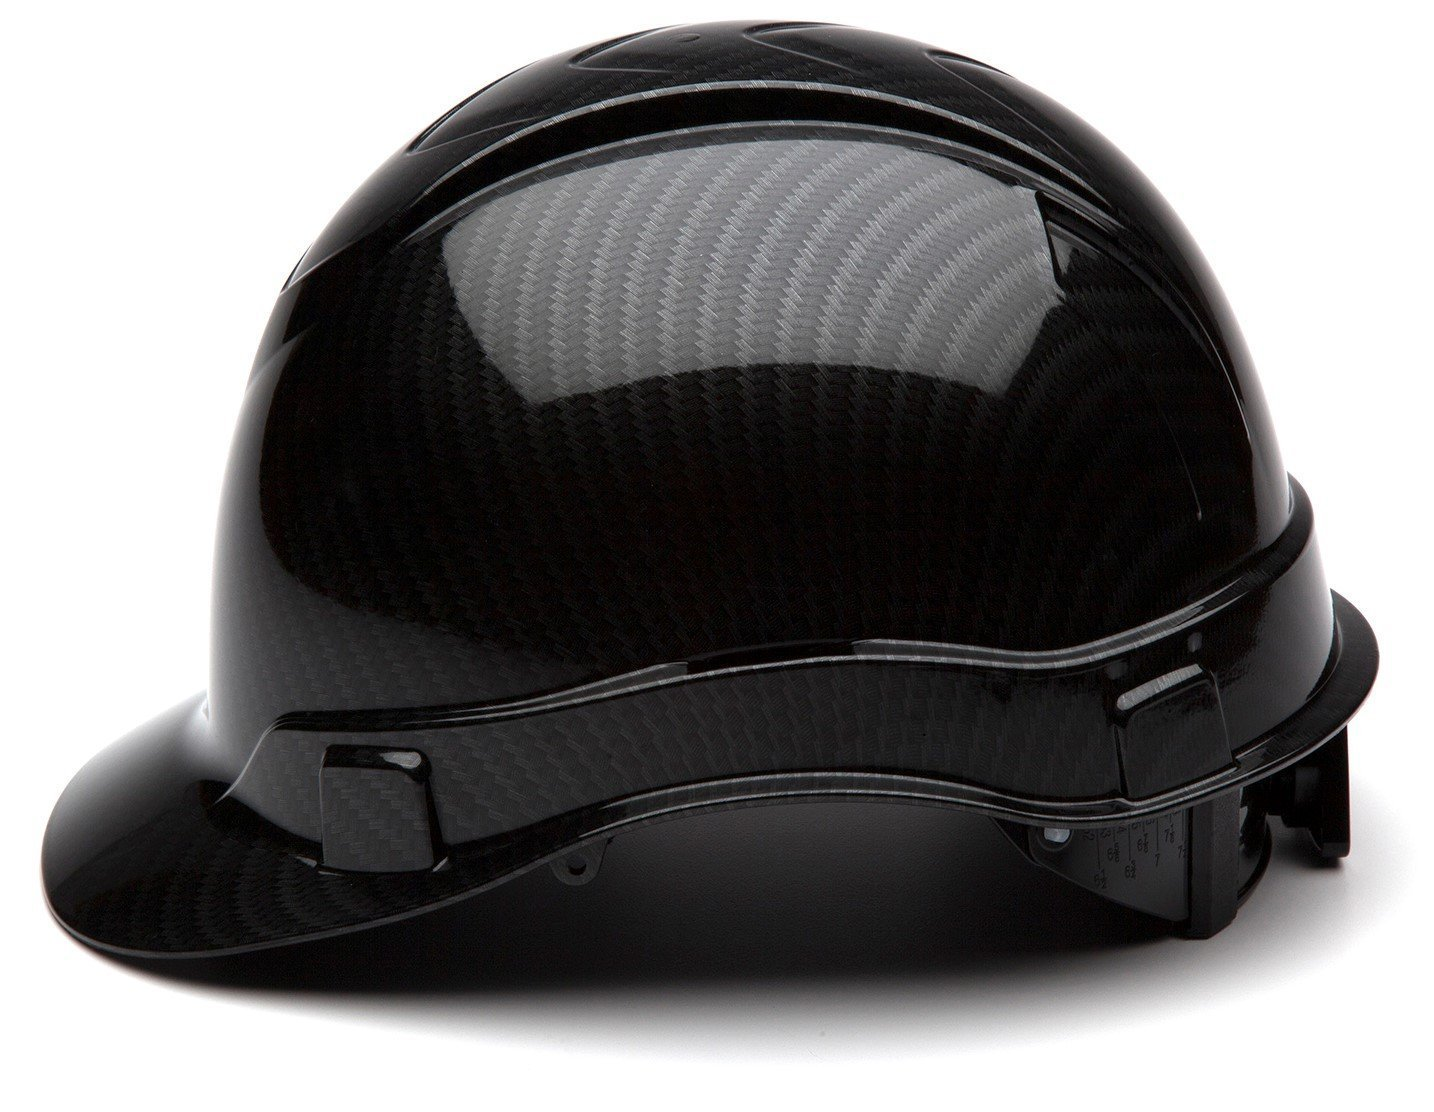 Cap Style Hard Hat, Adjustable Ratchet 4 Pt Suspension, Durable Protection safety helmet, Black Shiny Graphite Pattern Design, by Acerpal by ACERPAL